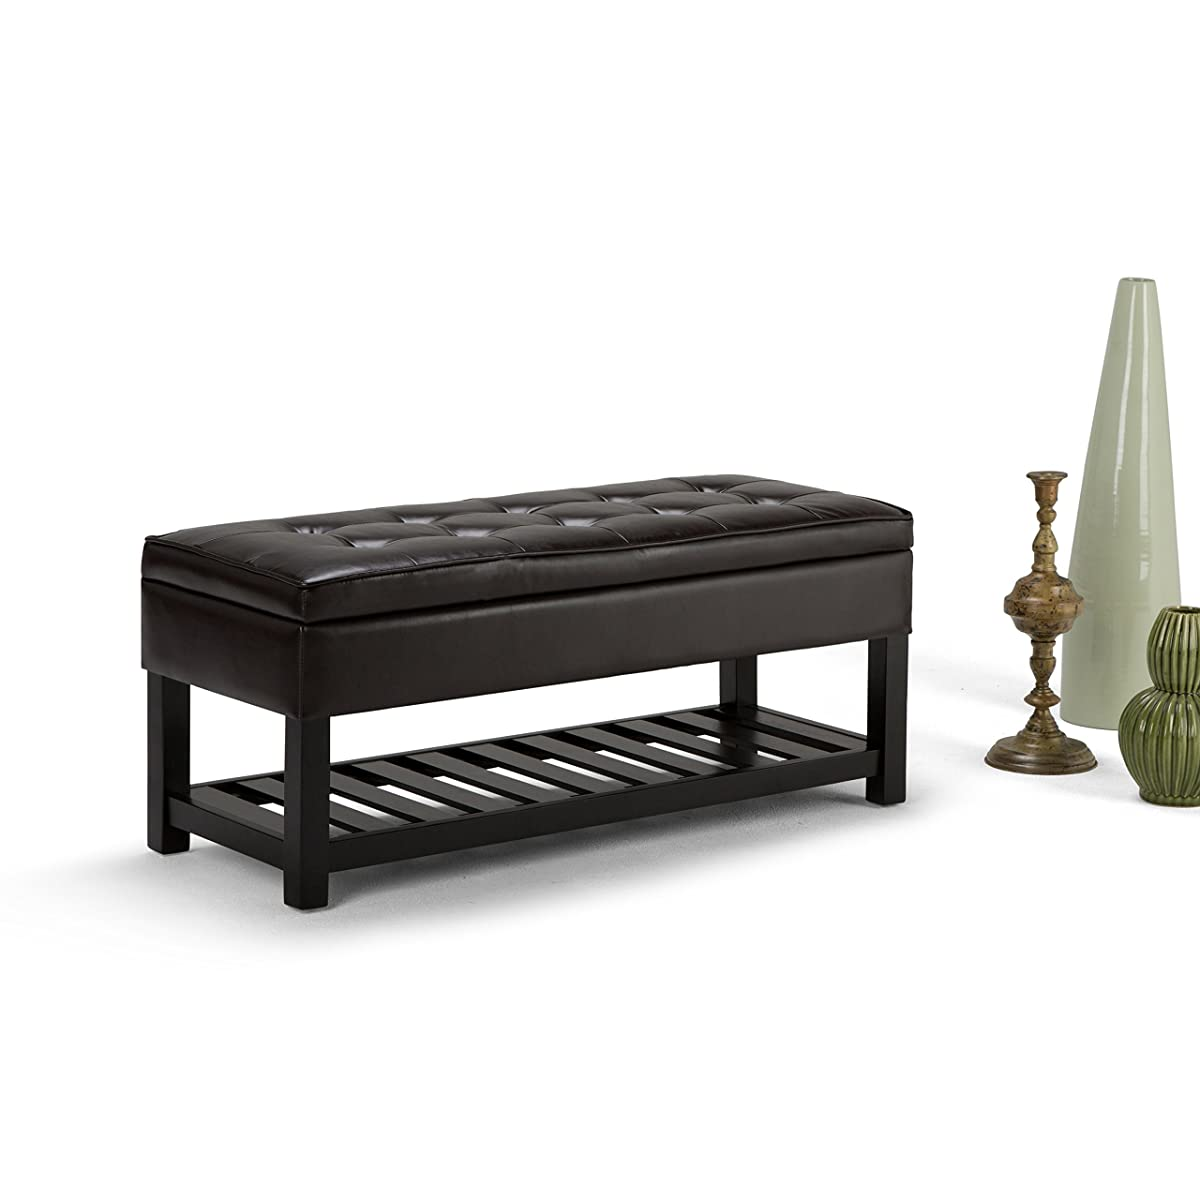 Simpli Home Cosmopolitan Storage Ottoman Bench, Espresso Brown